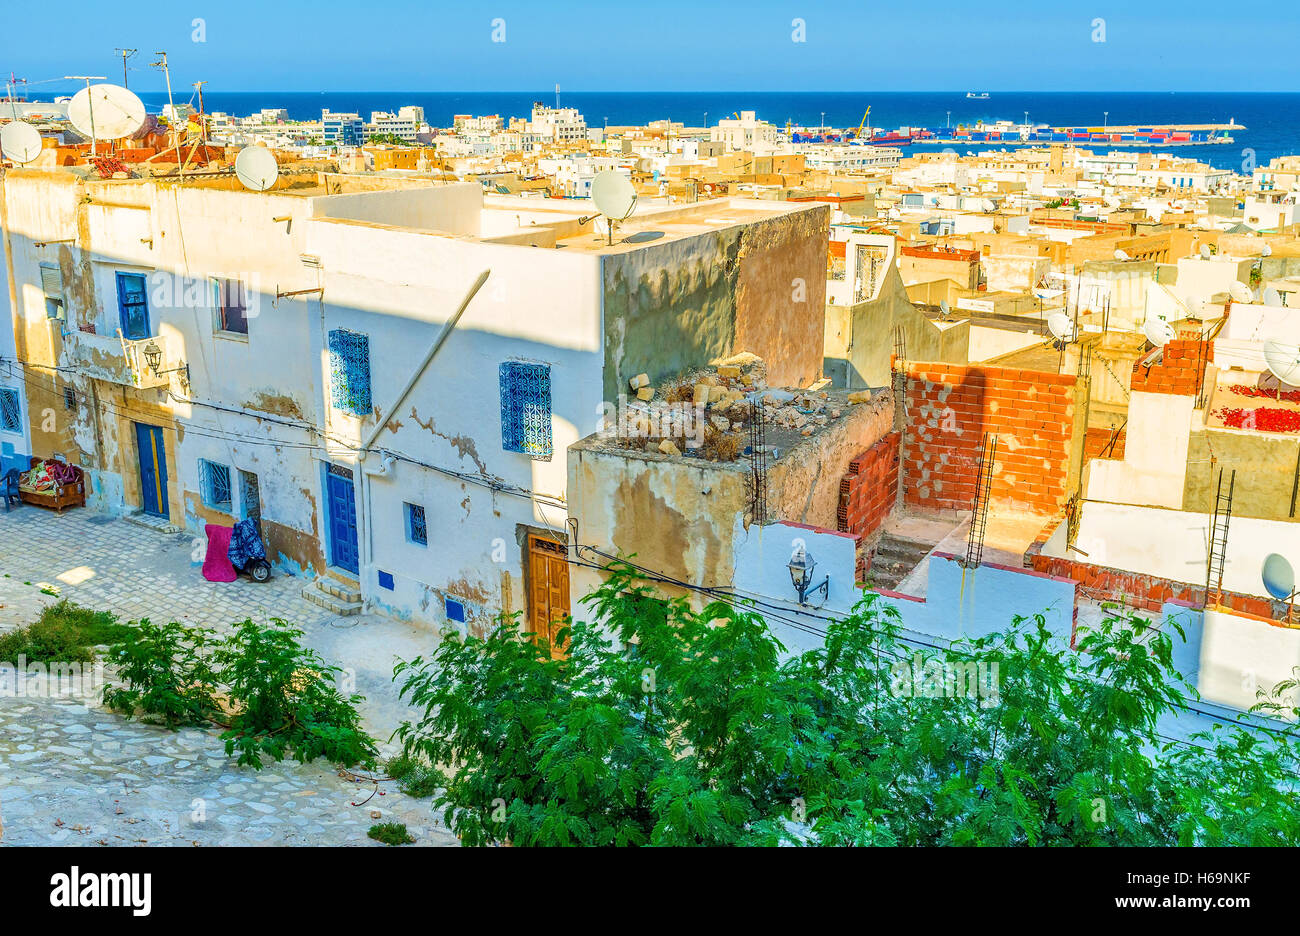 The Kasbah located on the top of the hill is the best place to enjoy aerial views of Sousse, Tunisia. - Stock Image